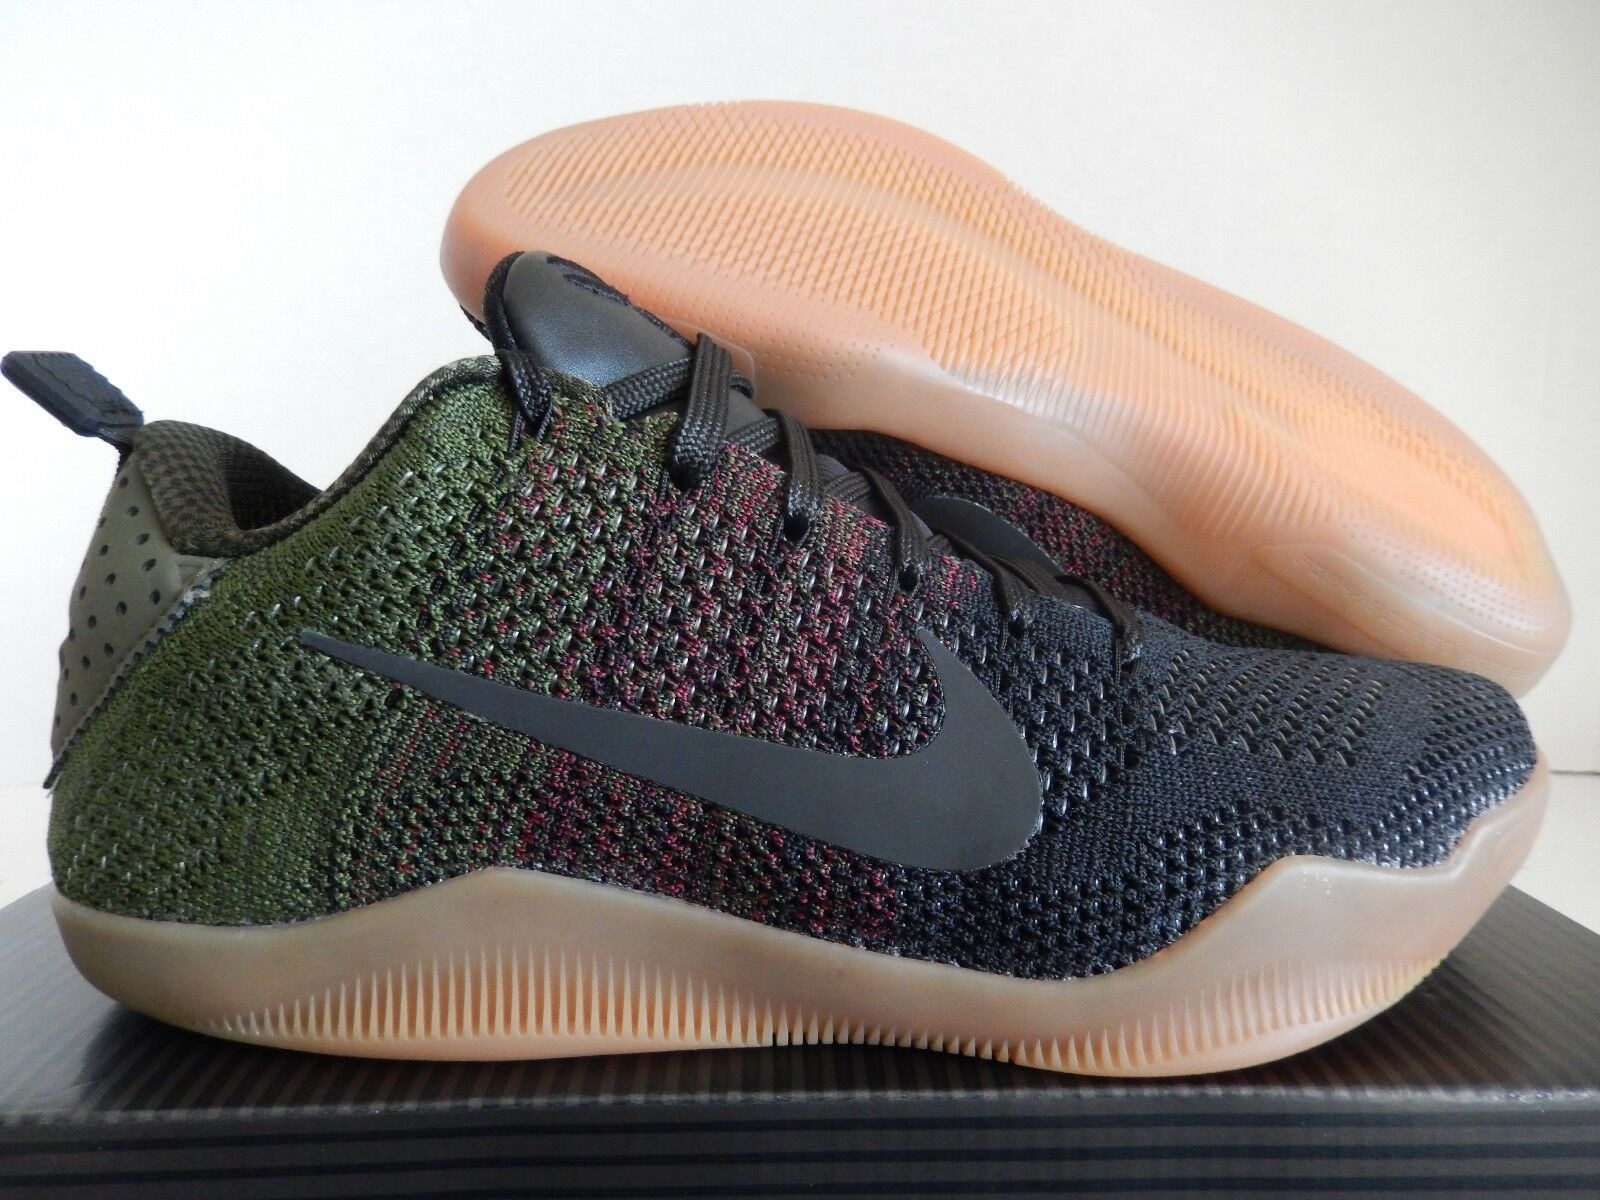 NIKE KOBE XI ELITE LOW 4KB  BLACK HORSE  BLACK-TEAM RED-GREEN SZ 8 [824463-063]